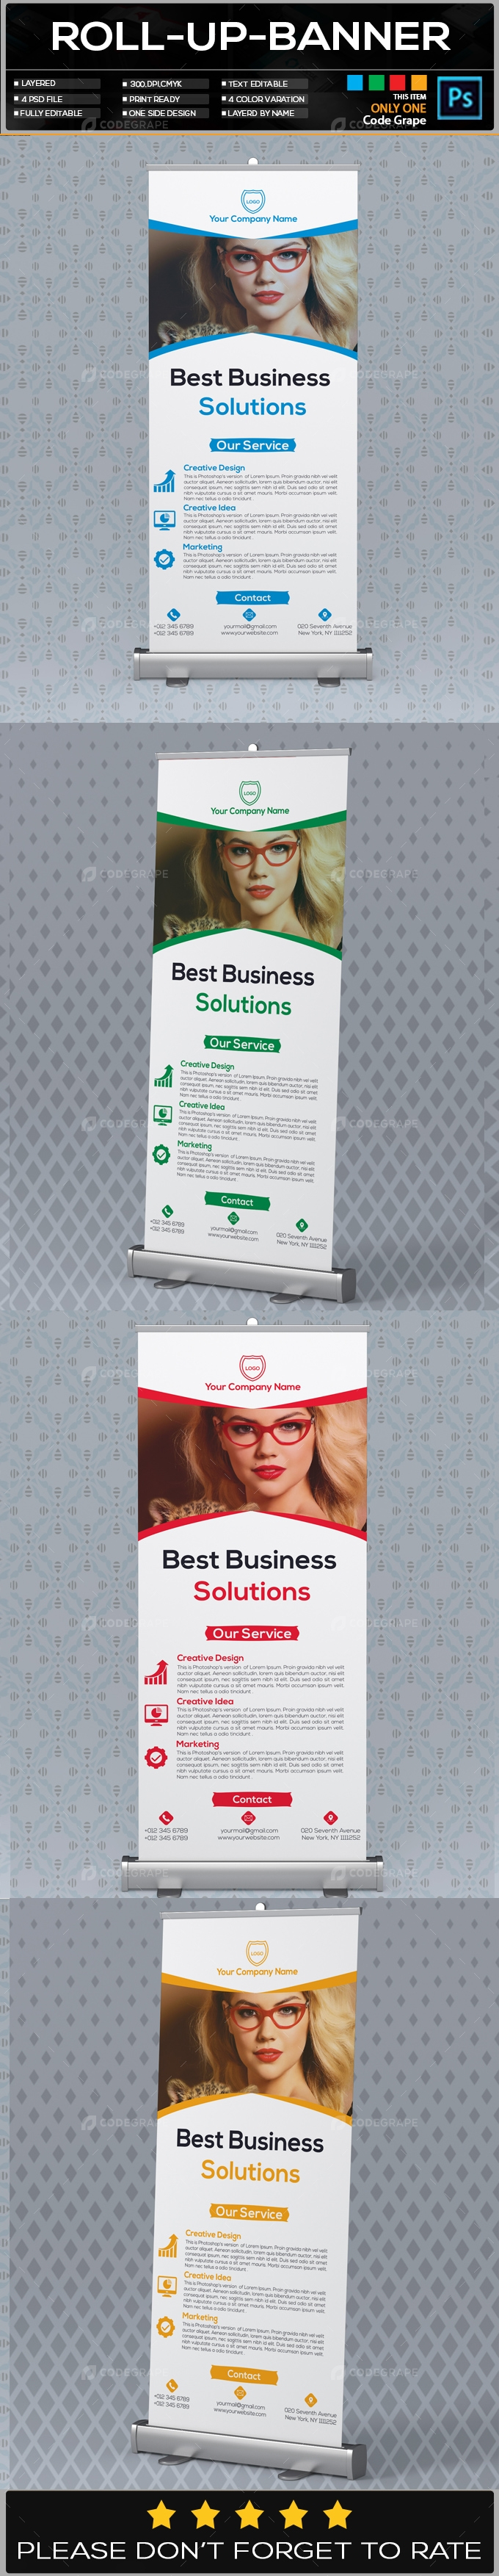 Roll Up Banner Vol - 20